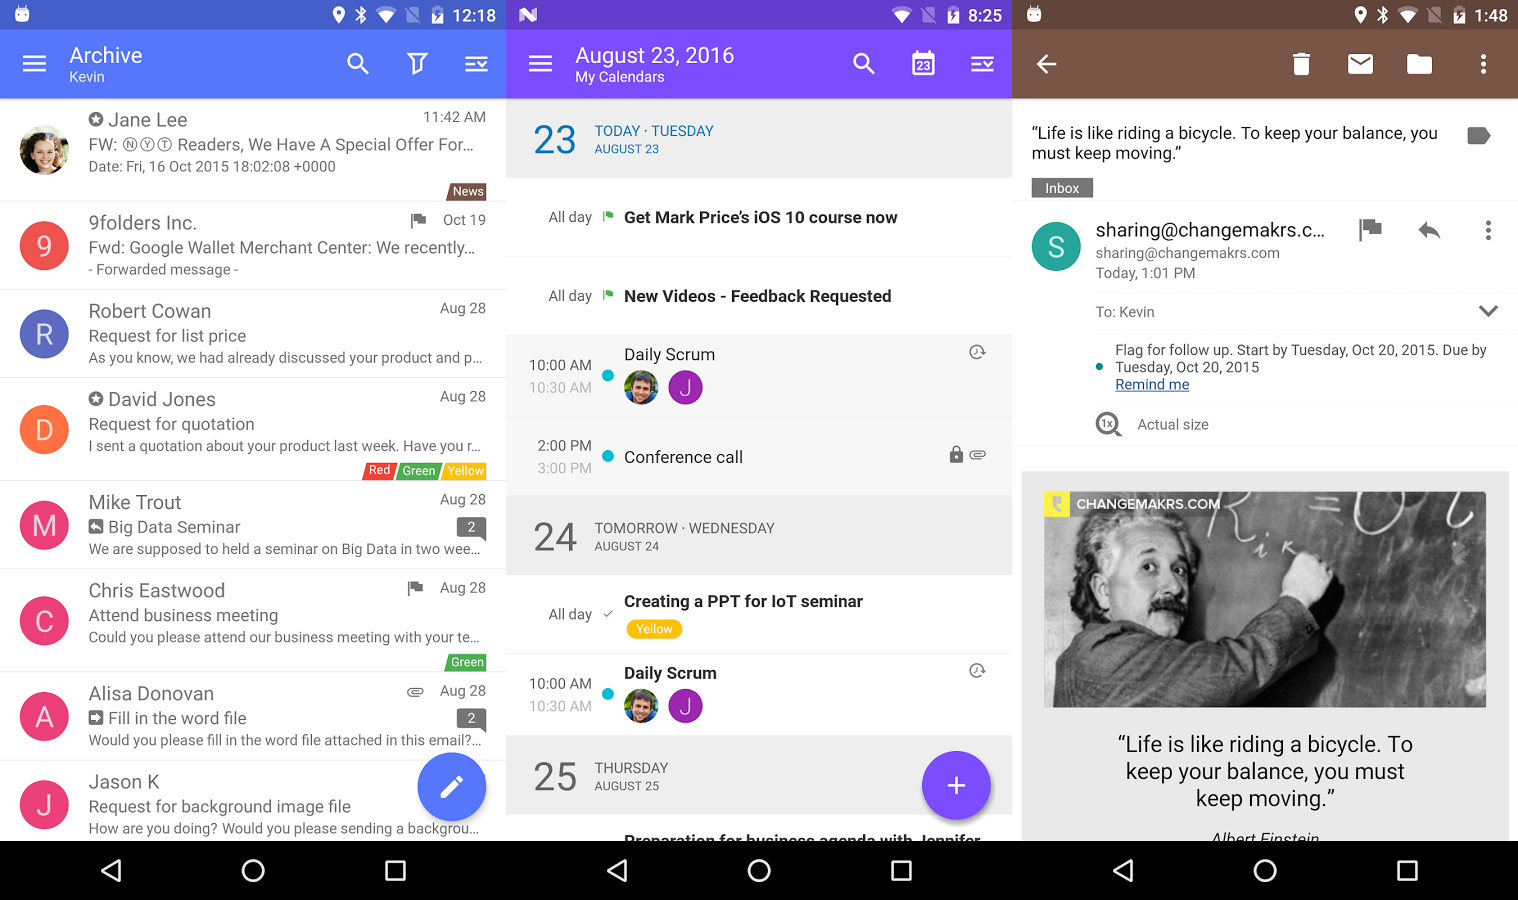 10 Best Email Apps for Android in 2018 | Phandroid